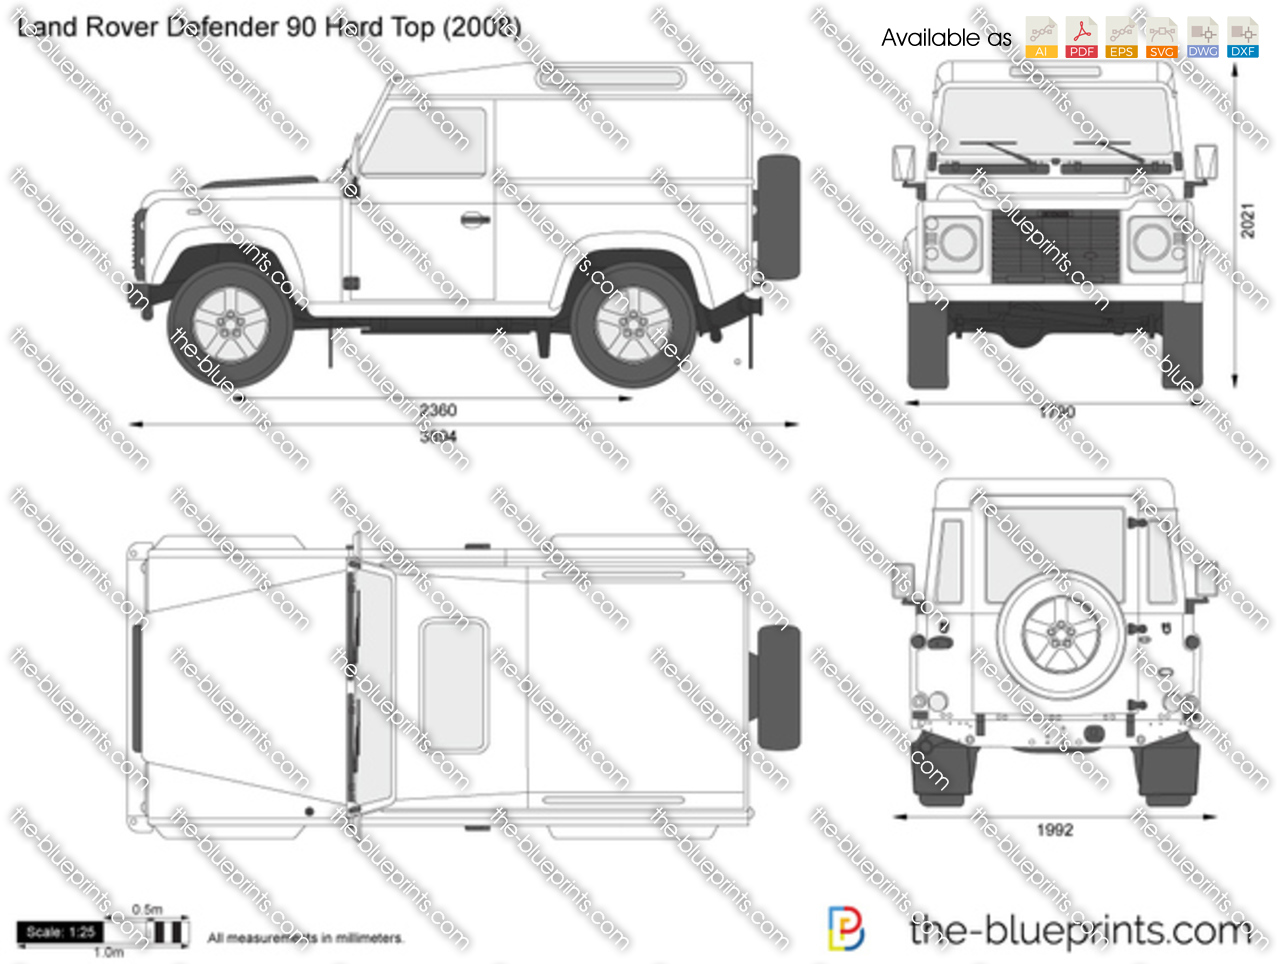 Land Rover Defender 90 Hard Top 2005